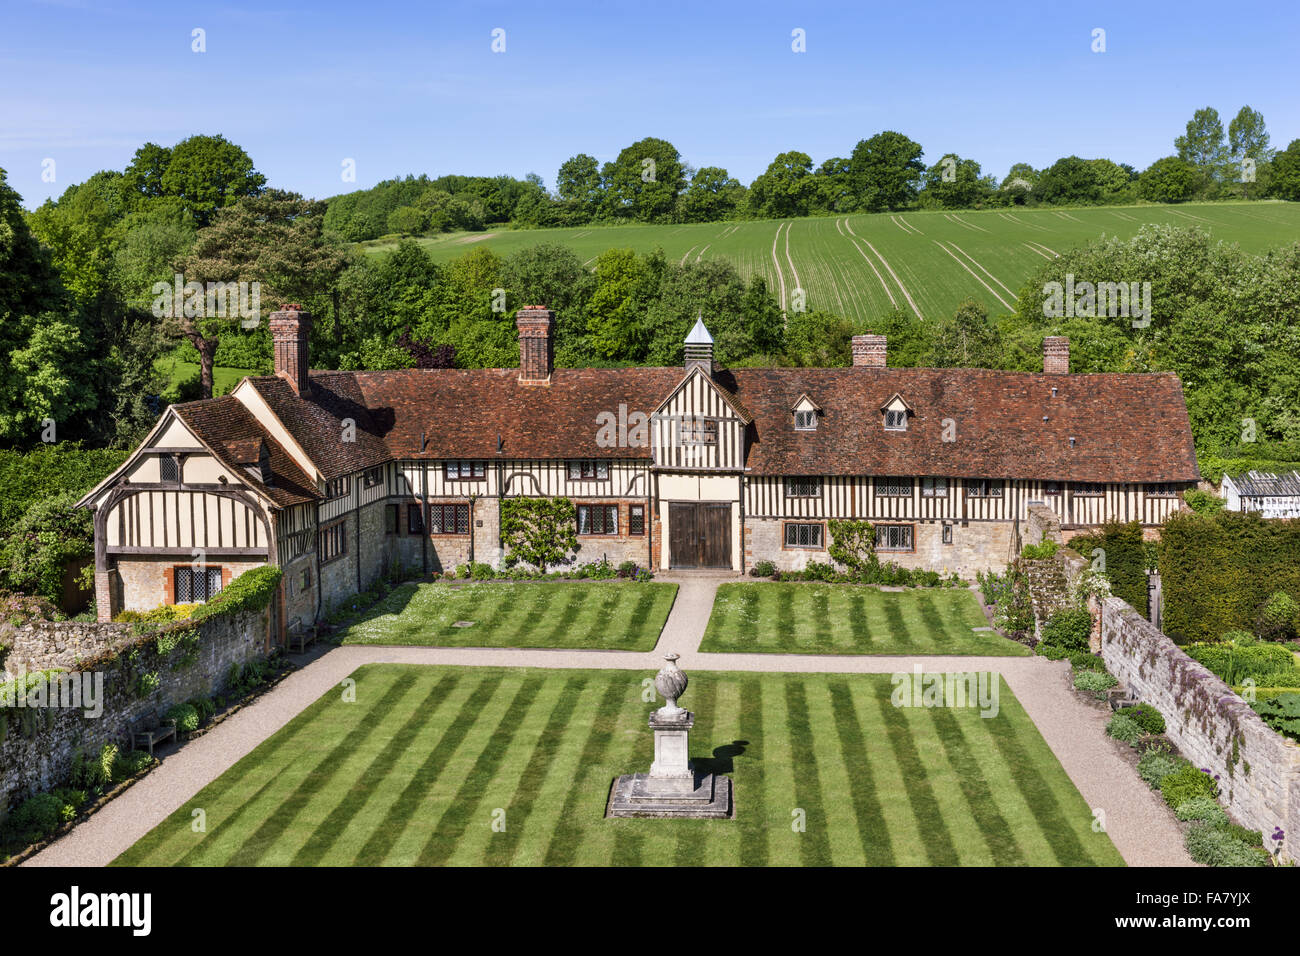 The cottages taken from the tower at Ightham Mote, Kent Stock Photo